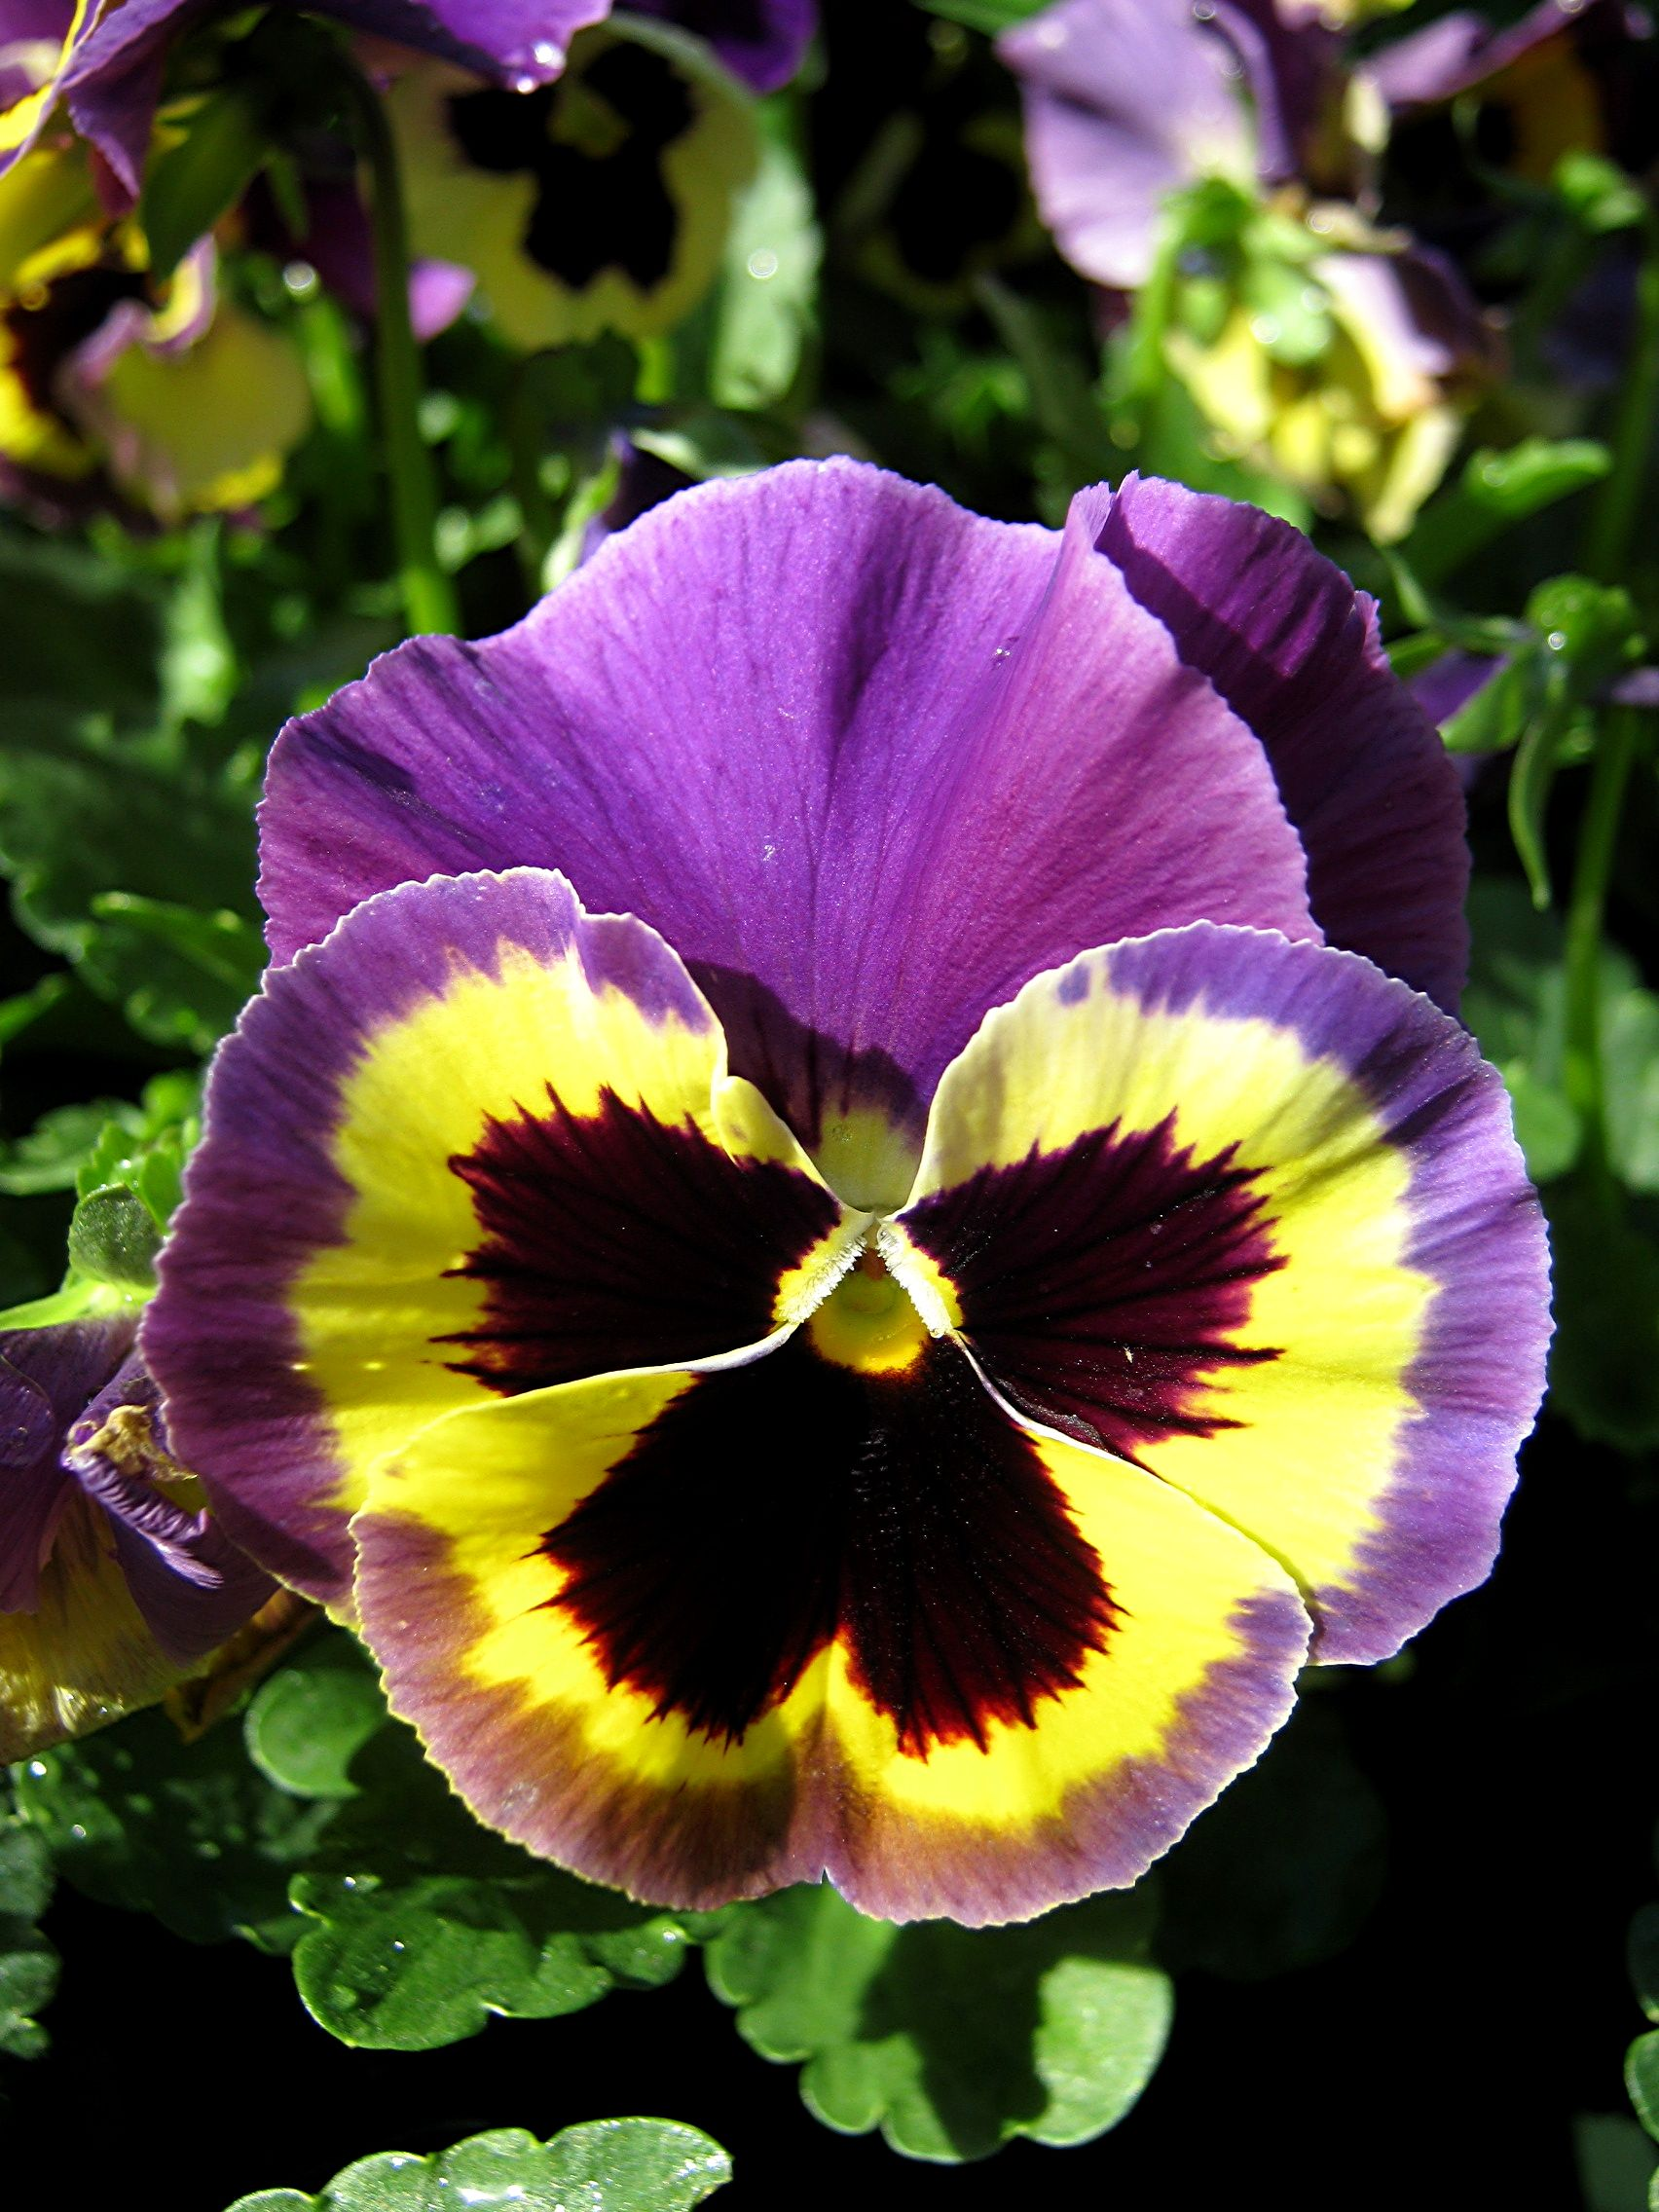 Pin On Flower Inspiration Pansy